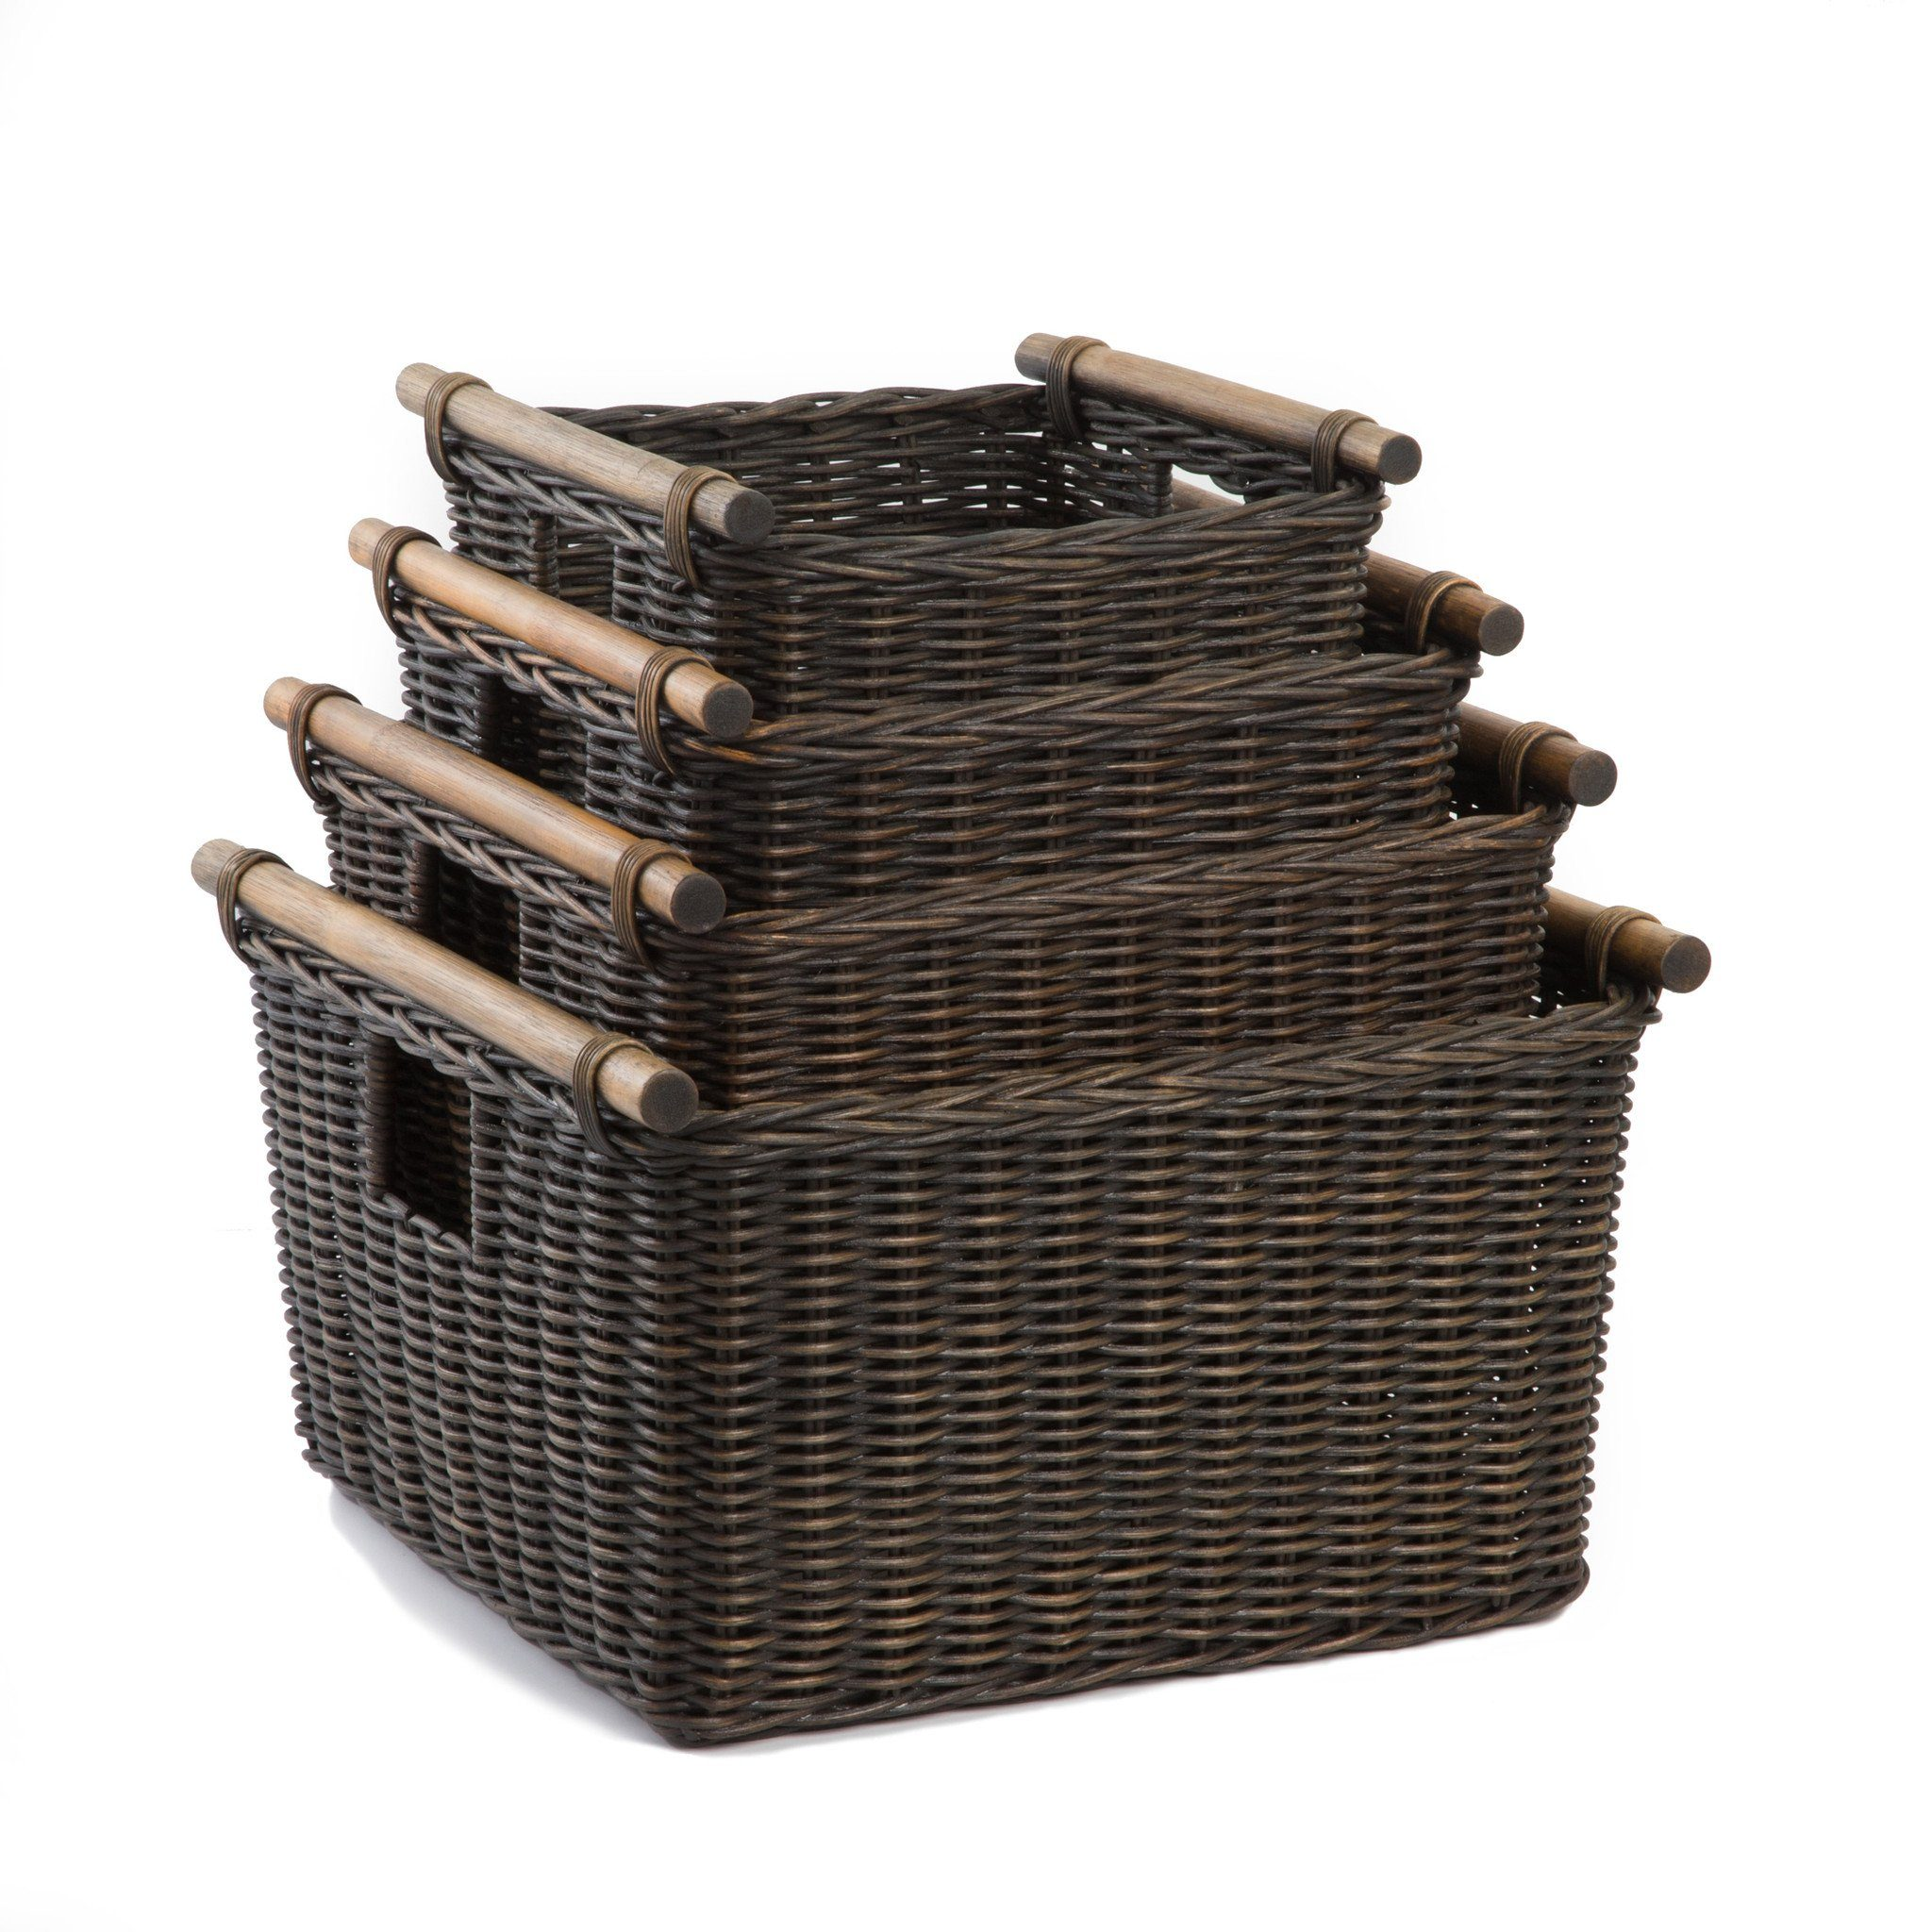 Home underbed storage baskets wicker underbed storage basket - The Basket Lady Deep Pole Handle Wicker Storage Baskets In Antique Walnut Brown 4 Sizes